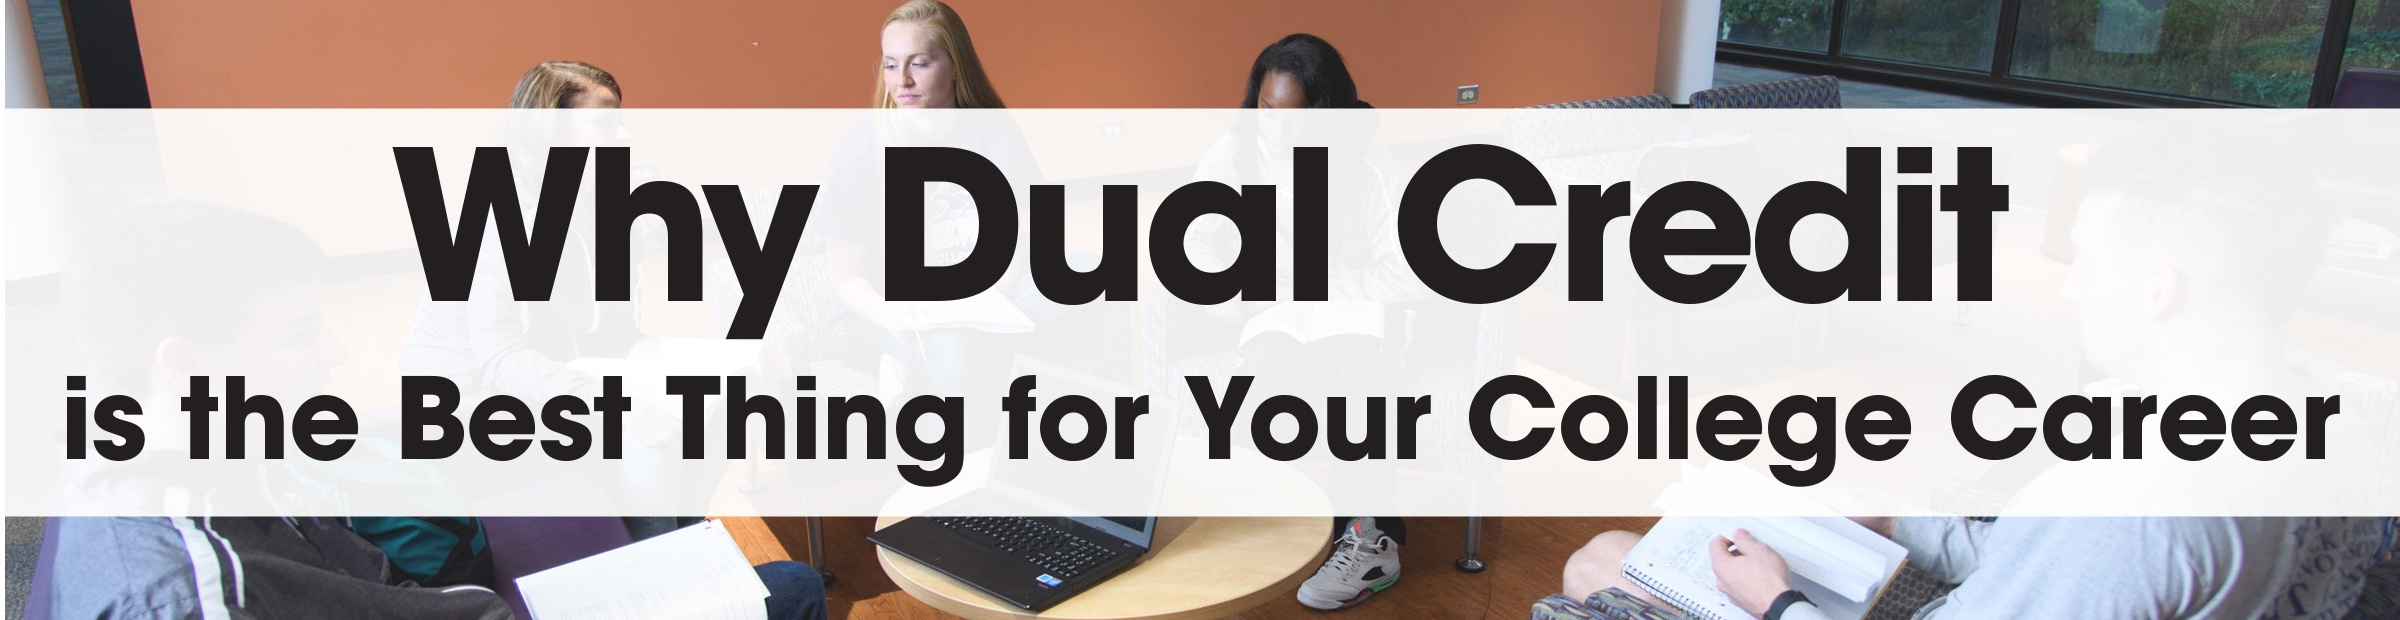 why dual credit is the best thing for your college career jjc joliet junior college